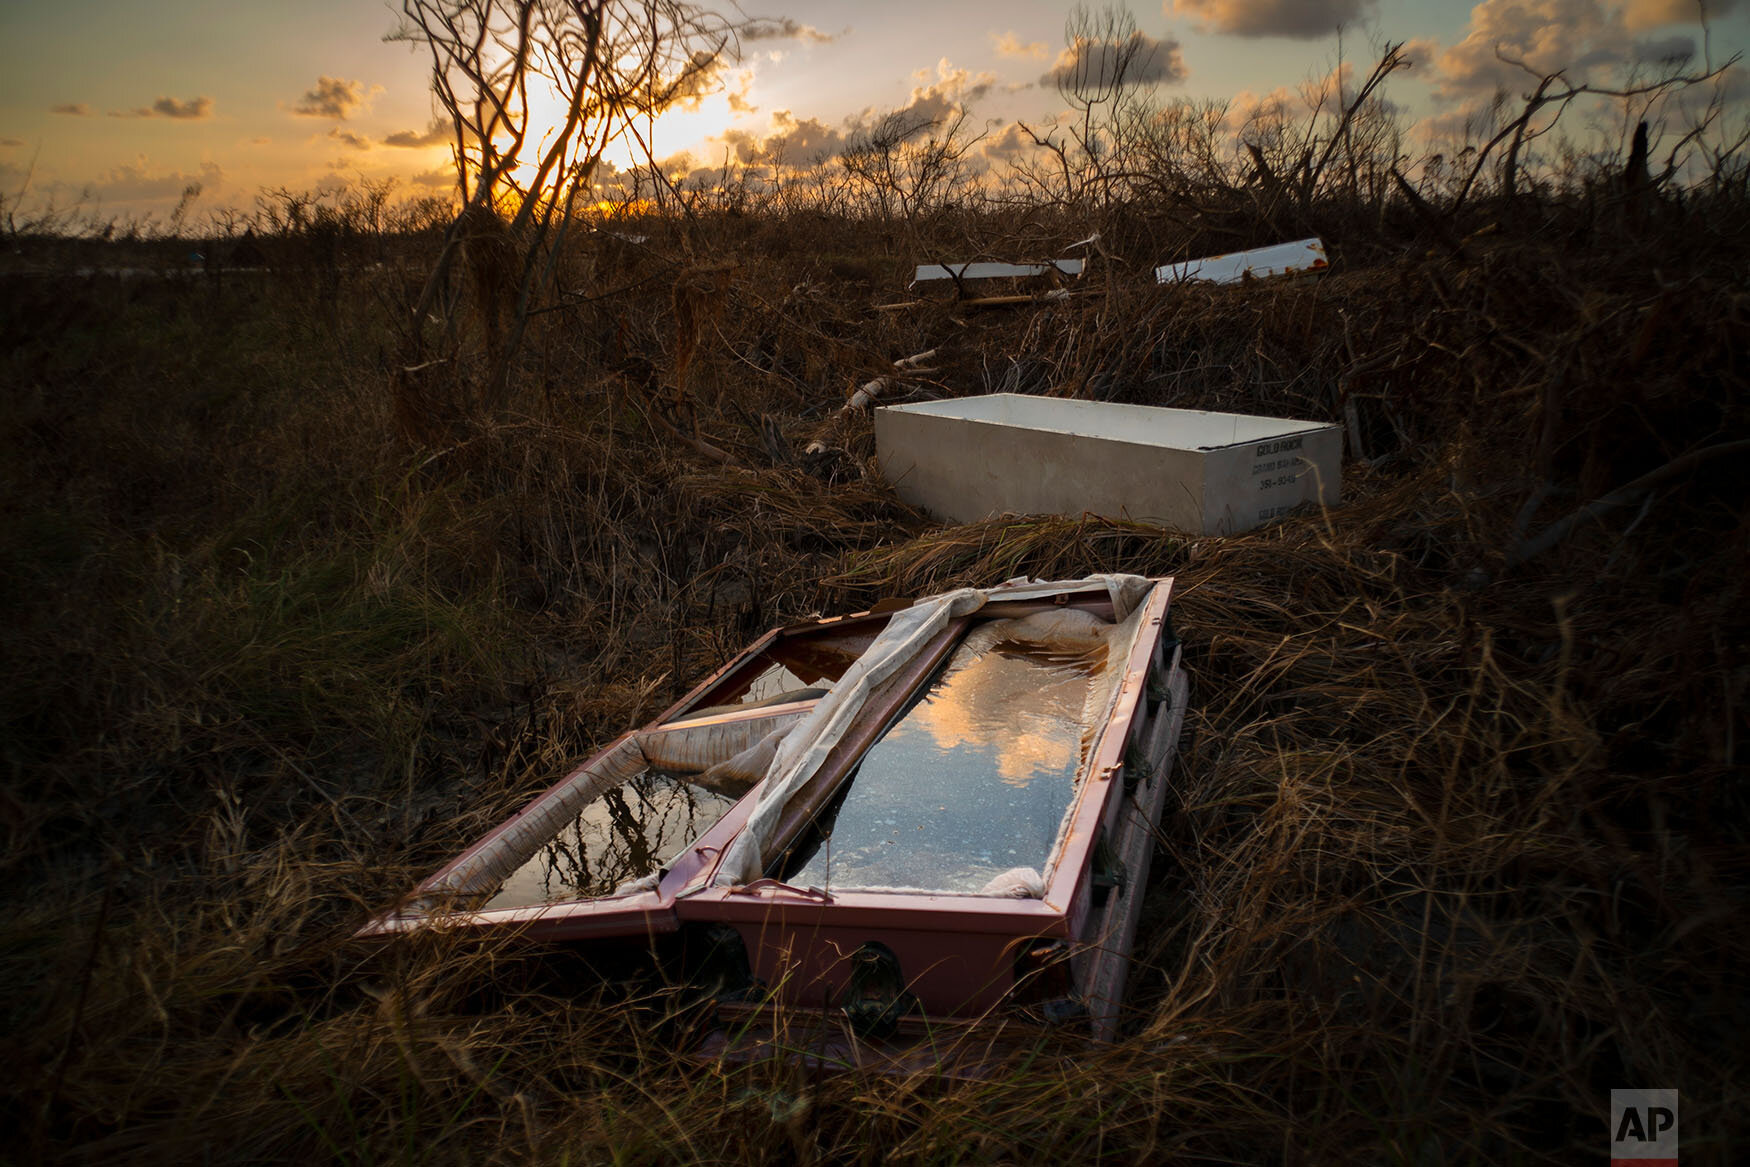 A shattered and water-filled coffin lays exposed to the elements in the aftermath of Hurricane Dorian, at the cemetery in Mclean's Town, Grand Bahama, Bahamas, Wednesday Sept. 11, 2019.  (AP Photo/Ramon Espinosa)